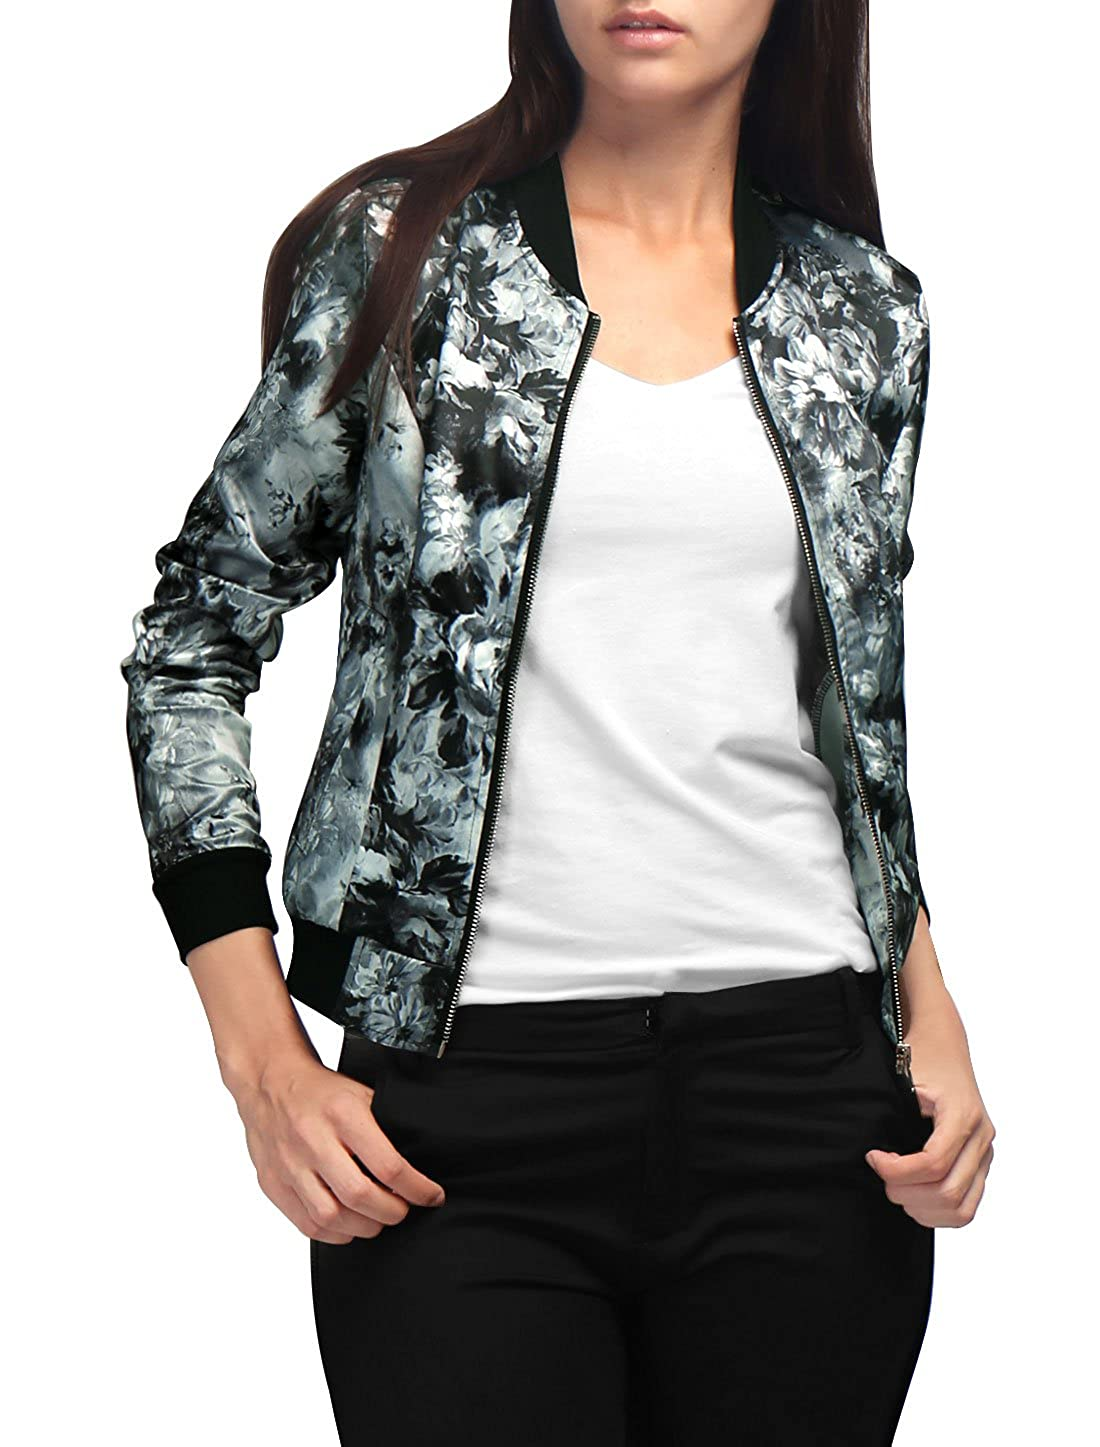 Search For Flights Plus Size Women Autumn Jacket Basic Coat Floral Print Baseball Jacket Bomber Long Sleeve Top Zipper Casual Outwear With Pocket 100% Original Women's Clothing